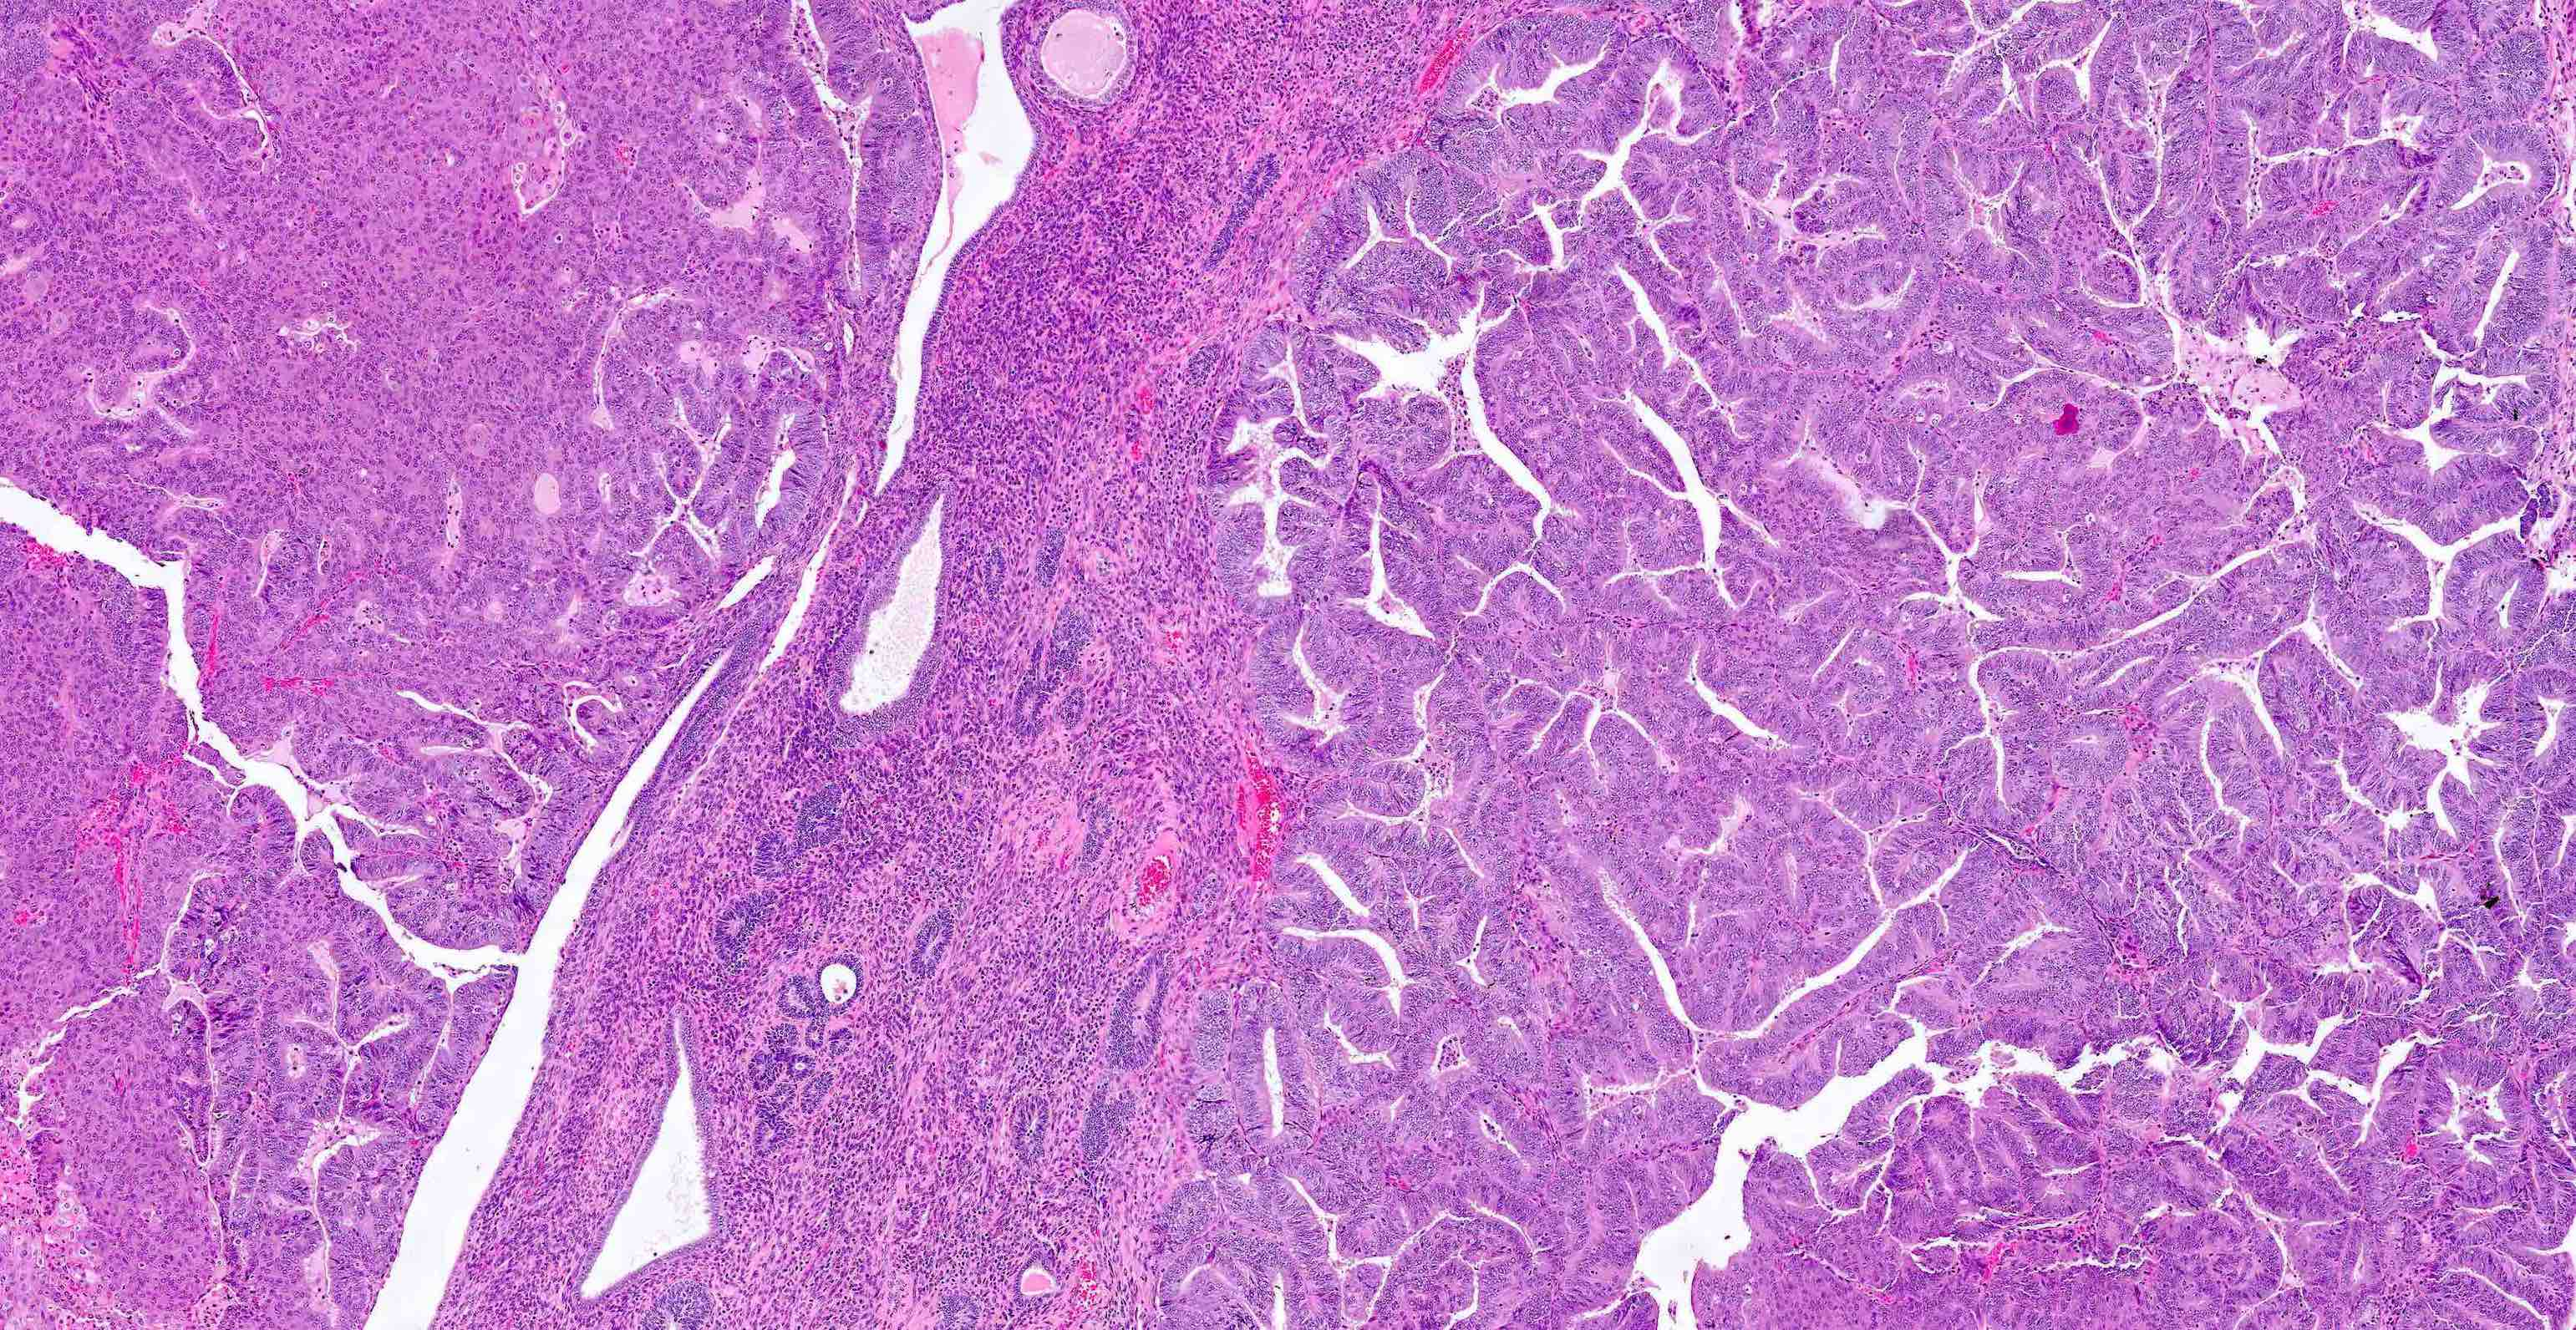 Squamous metaplasia